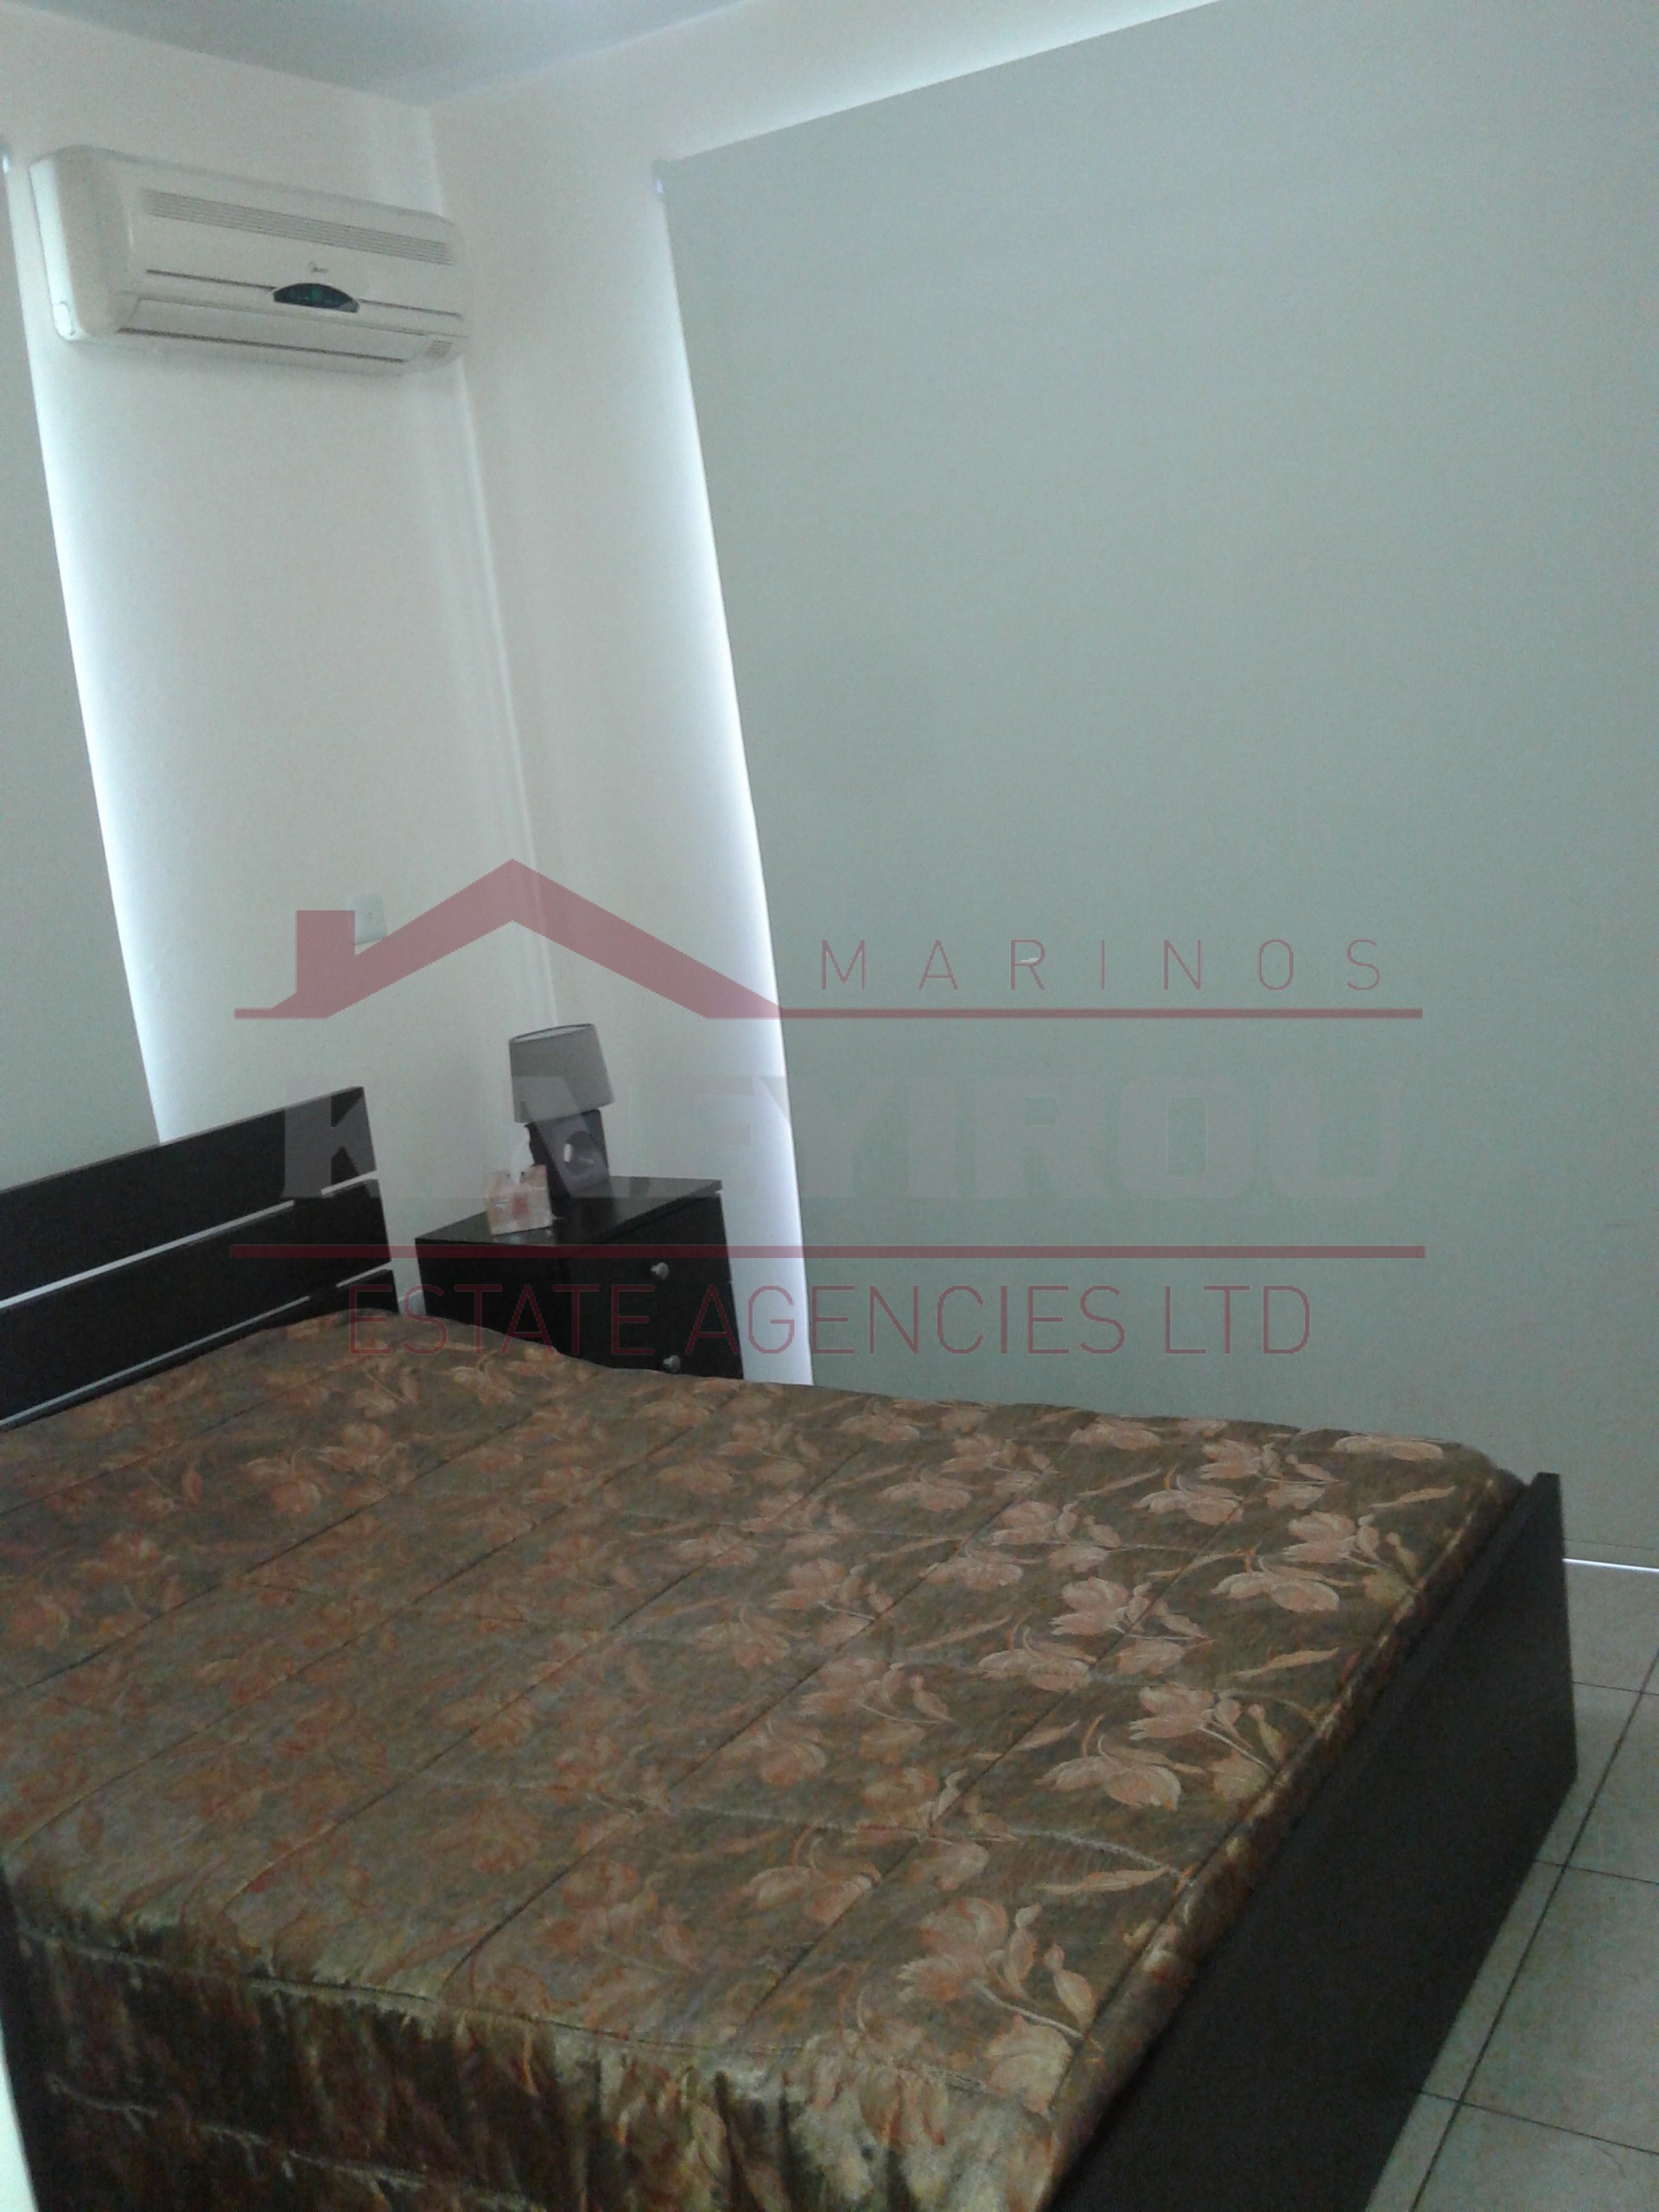 Larnaca property for rent in Ayious Anaryirous